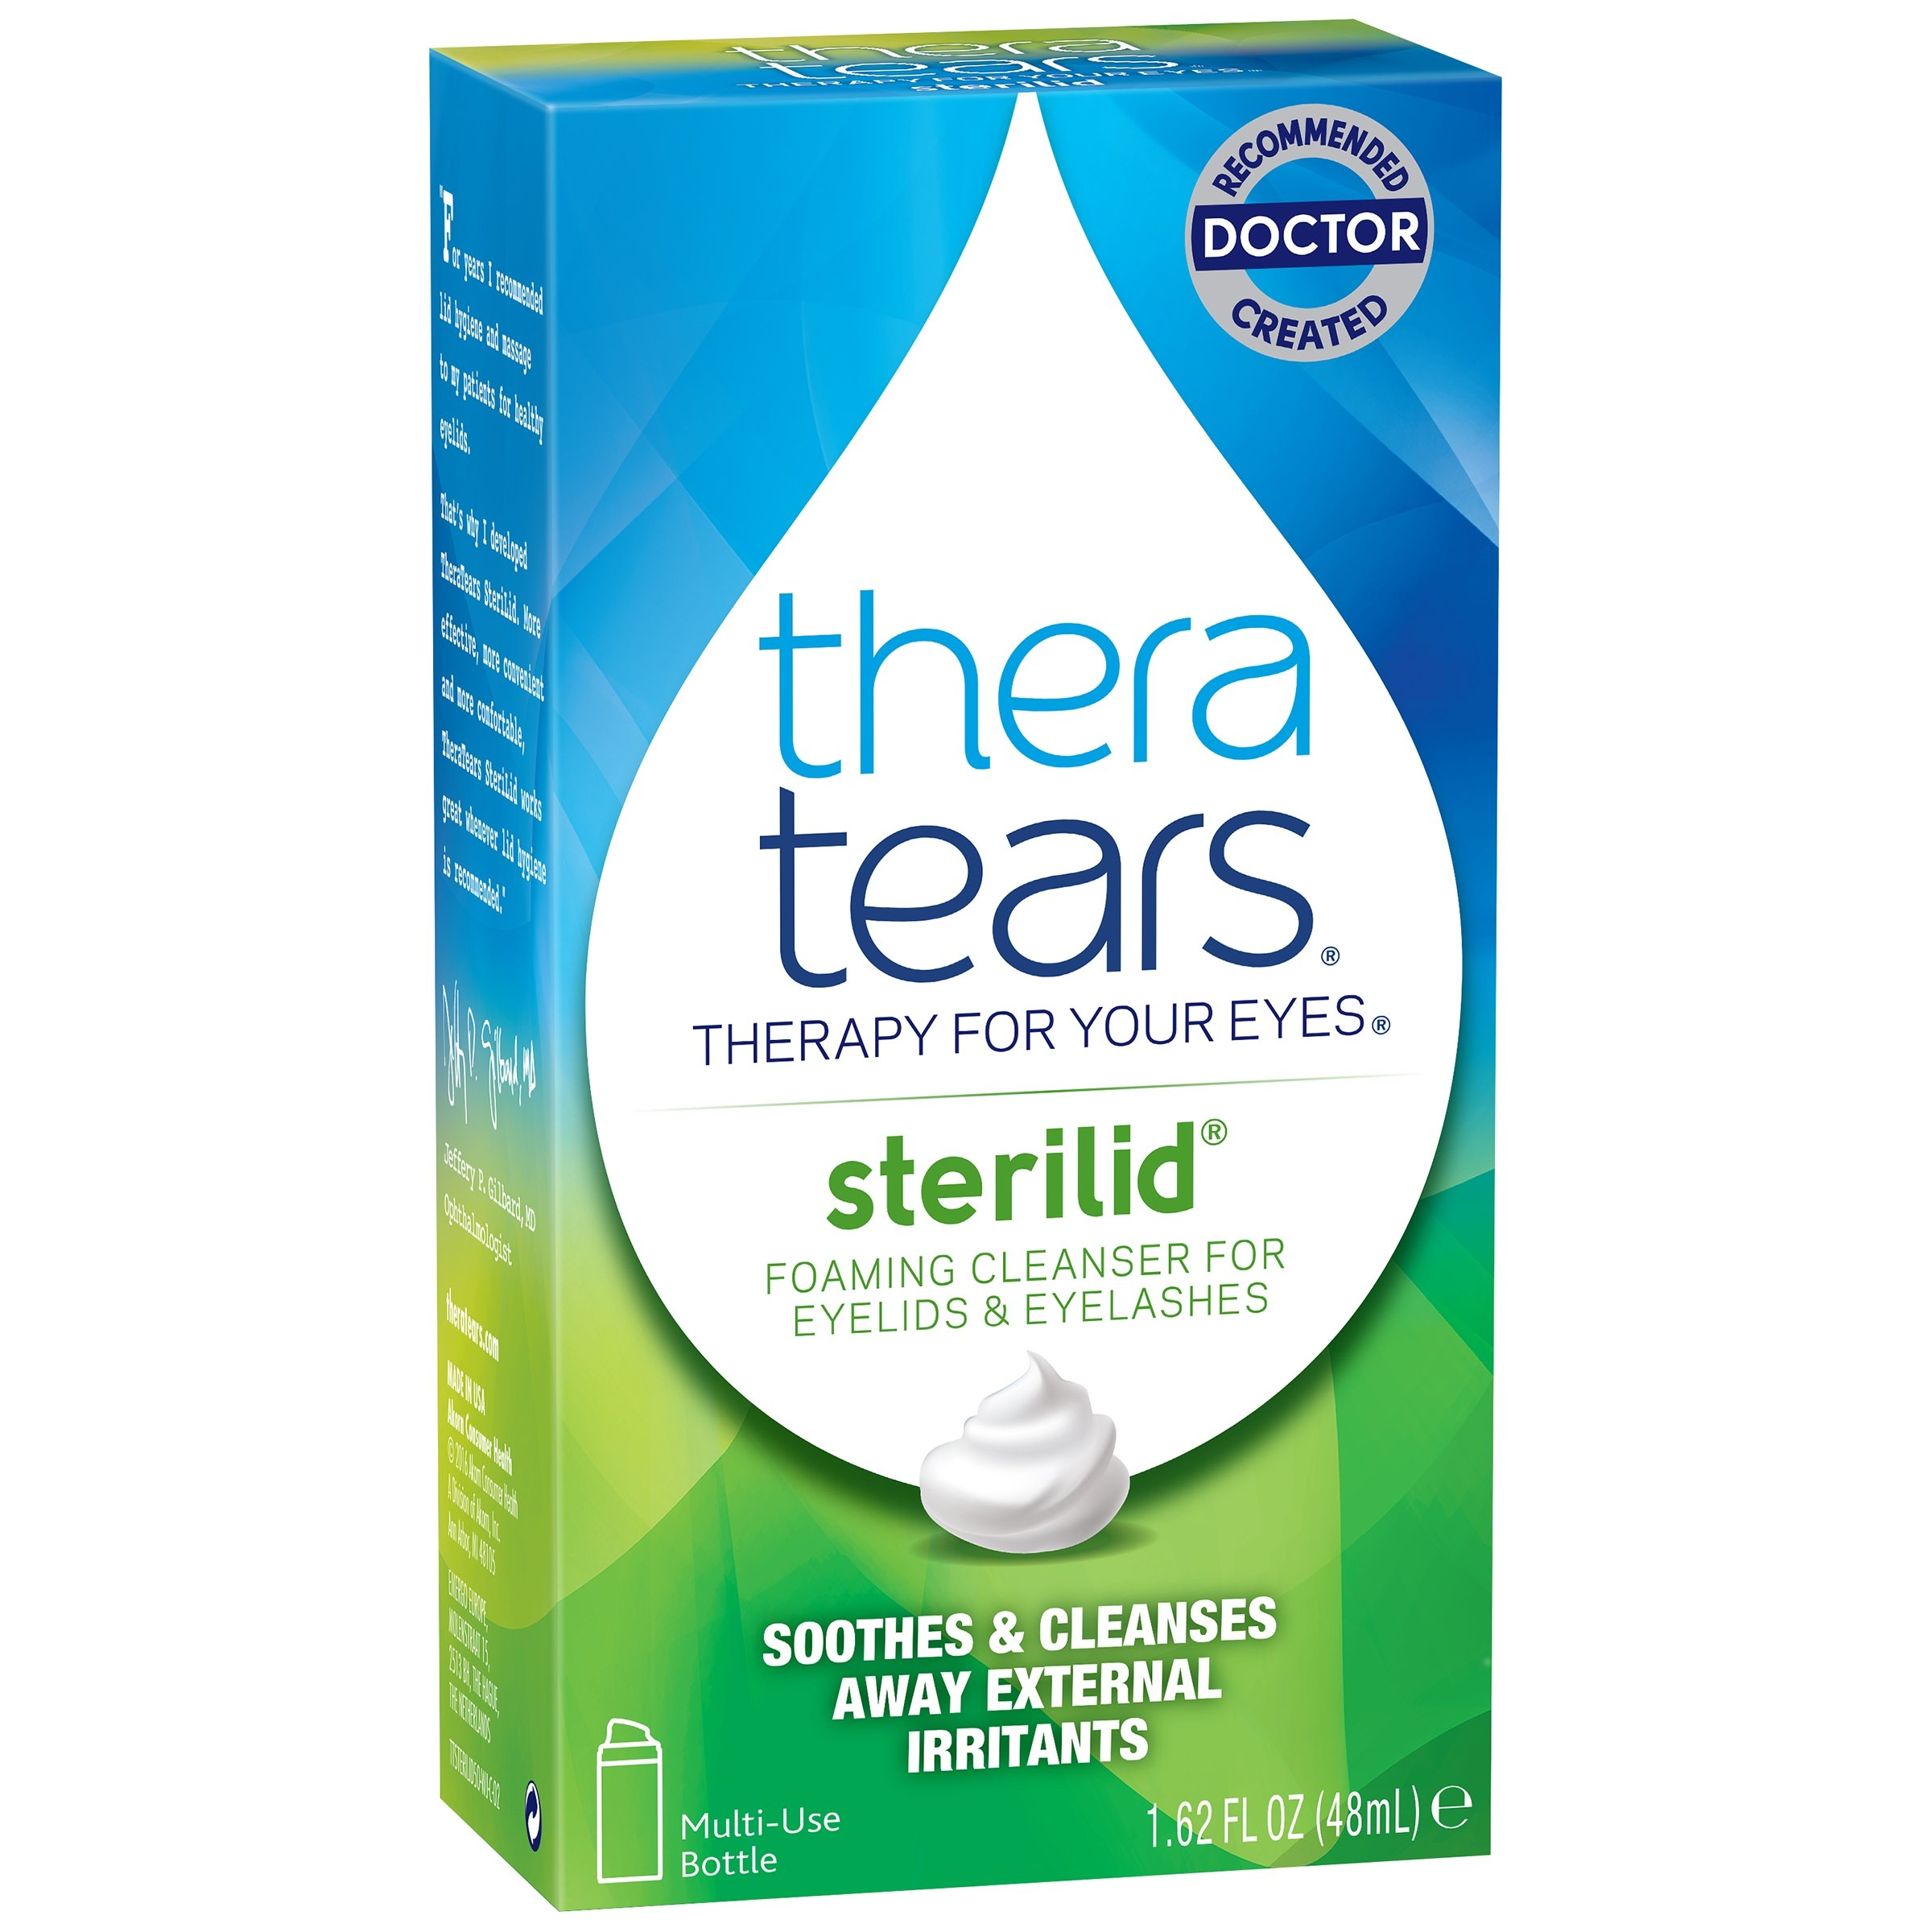 TheraTears Sterilid Eyelid Cleanser, Multi 6 Pack ( 9.72 FL OZ Total ) by Thera Tears